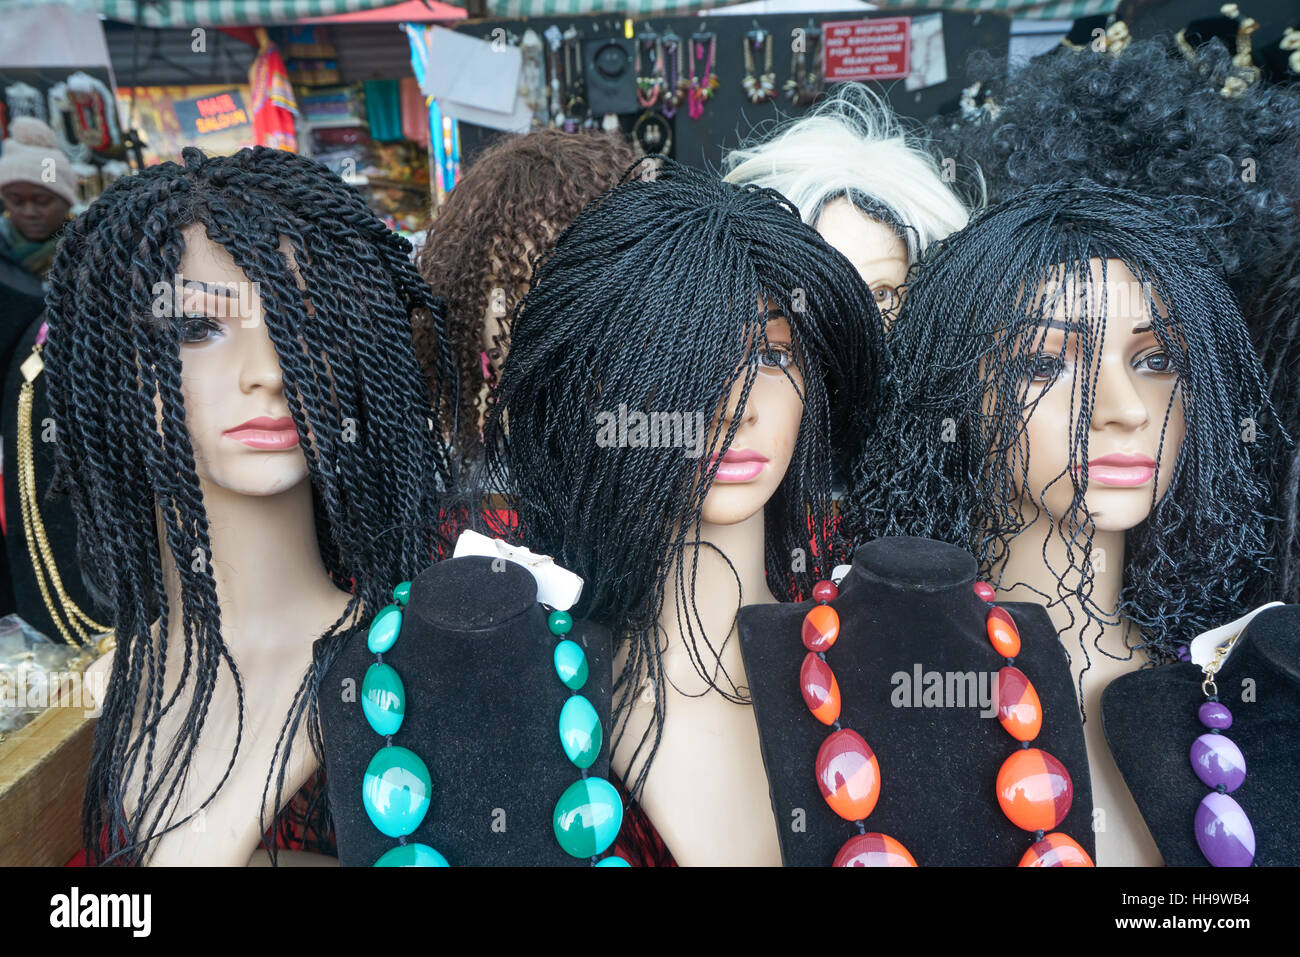 Perruques, Ridley Road, Dalston. Styles de Cheveux africains. Photo Stock